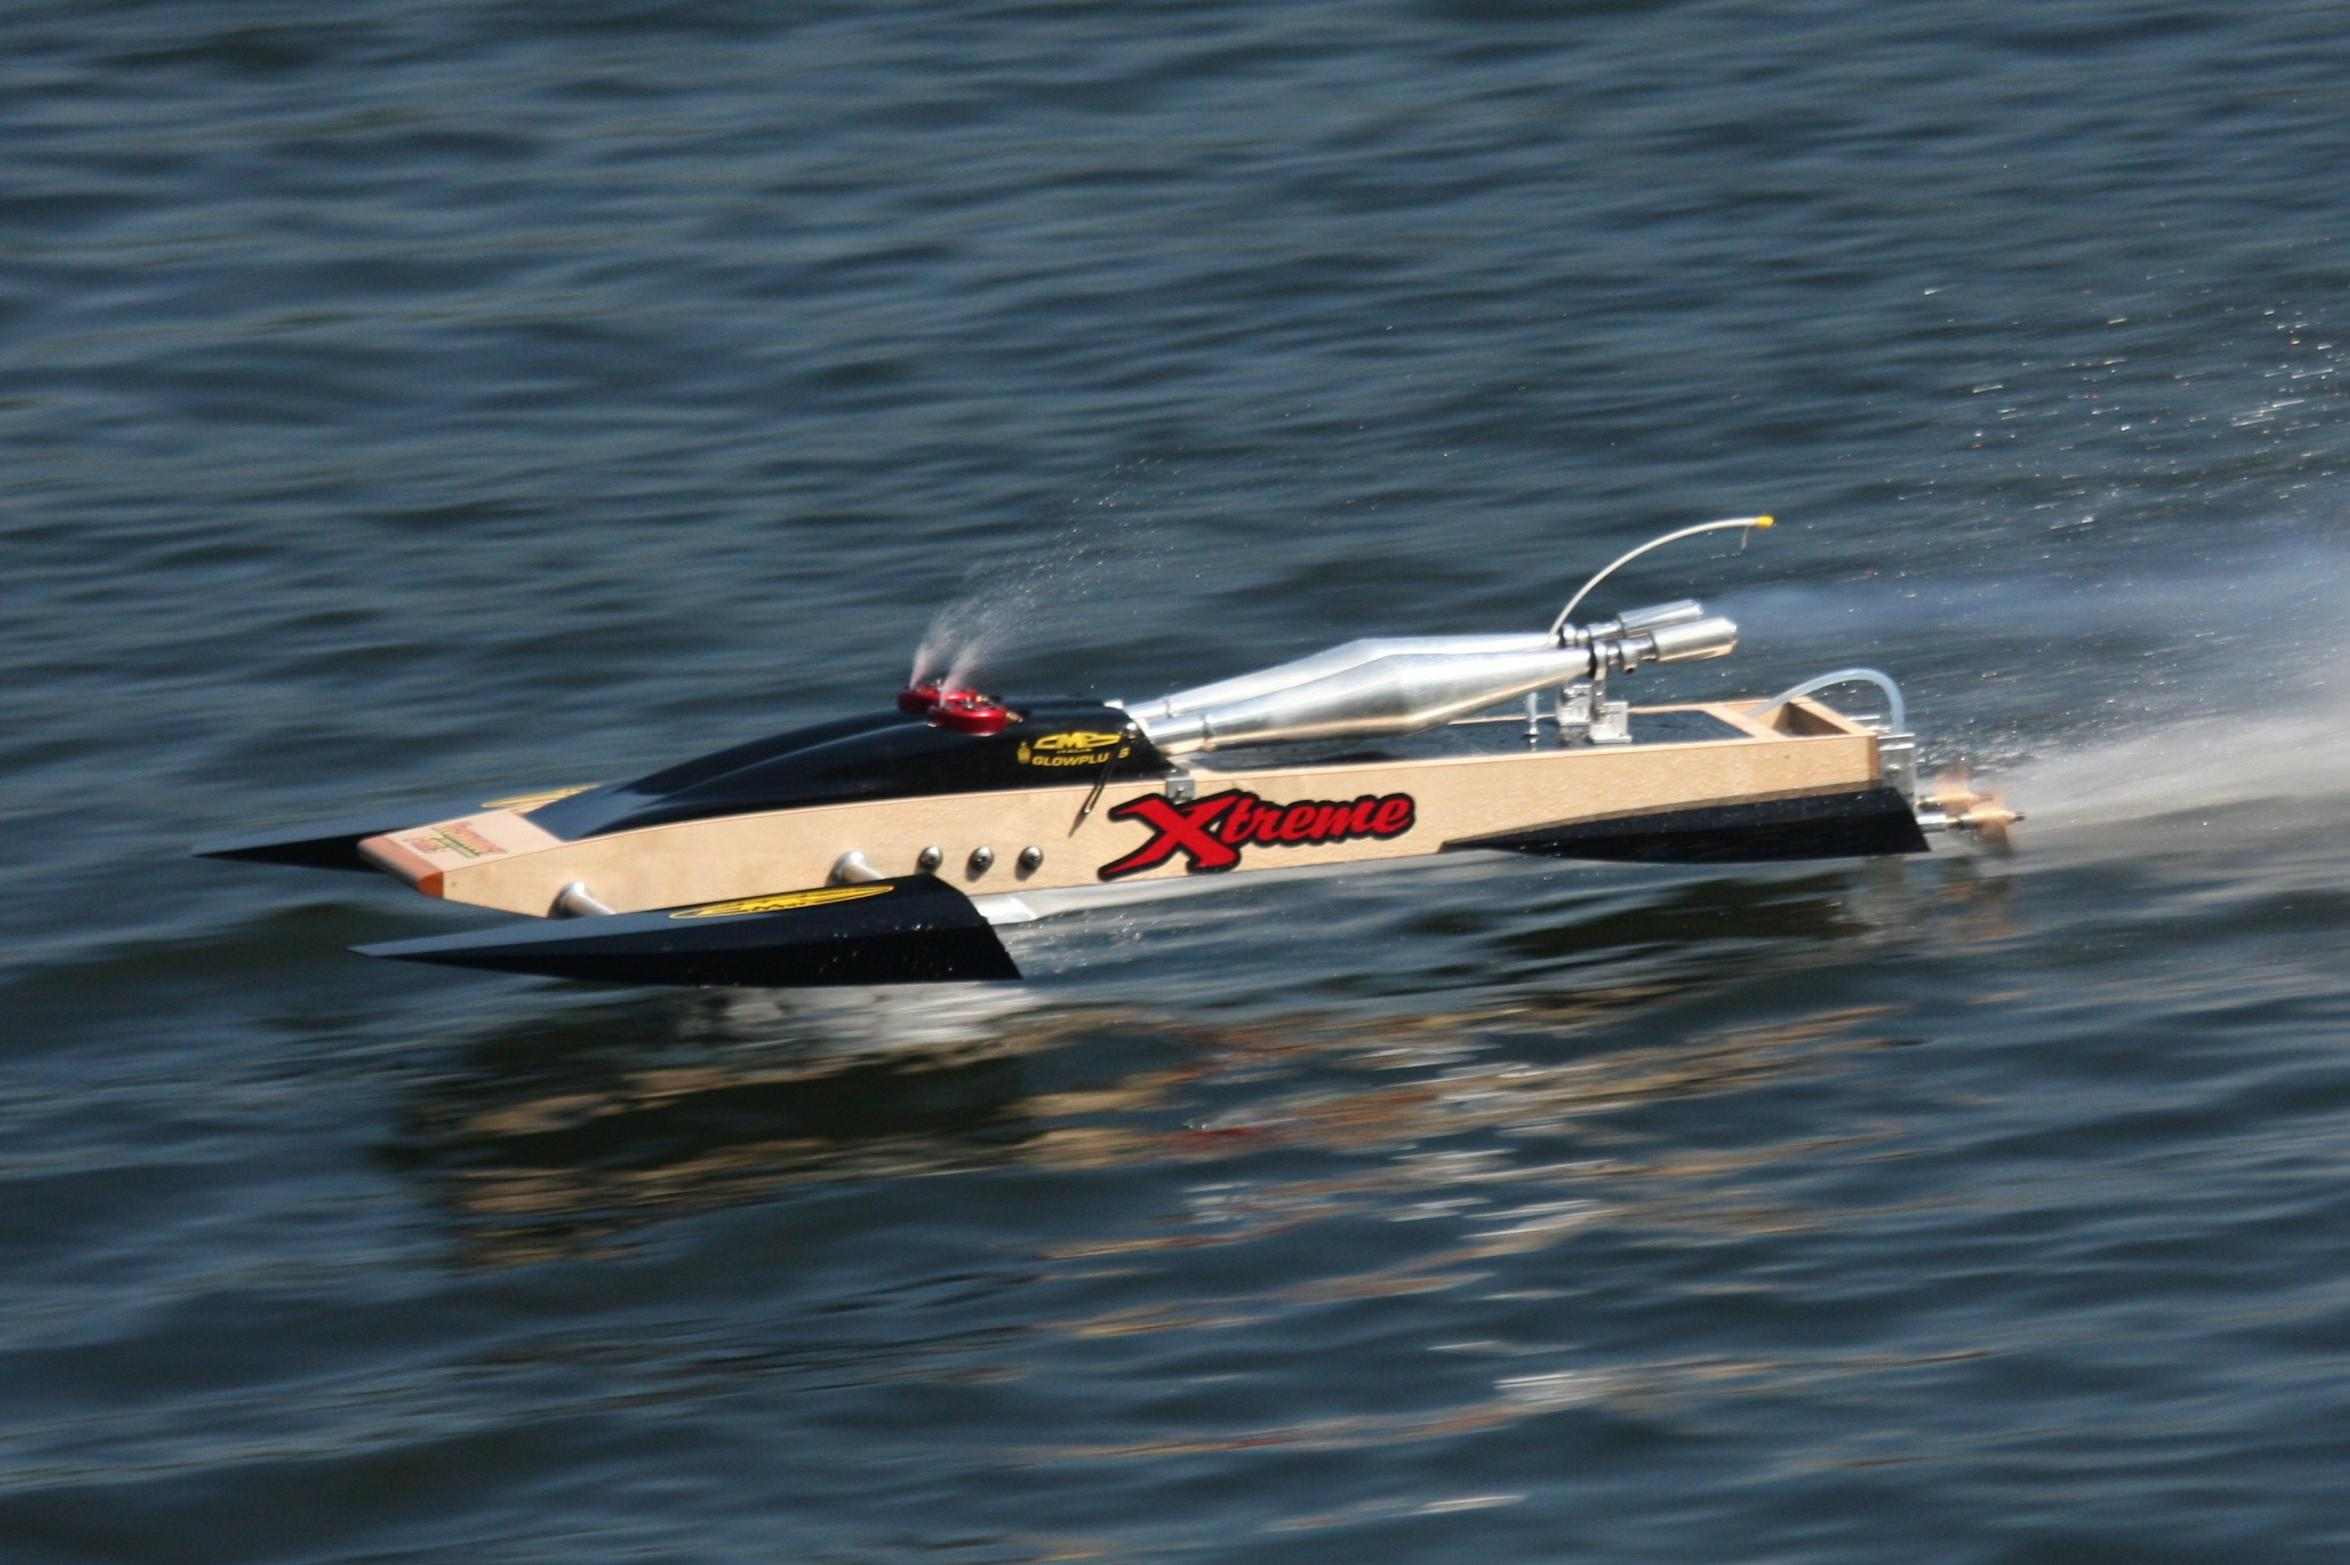 Post pics of ur boats - Page 16 - R/C Tech Forums